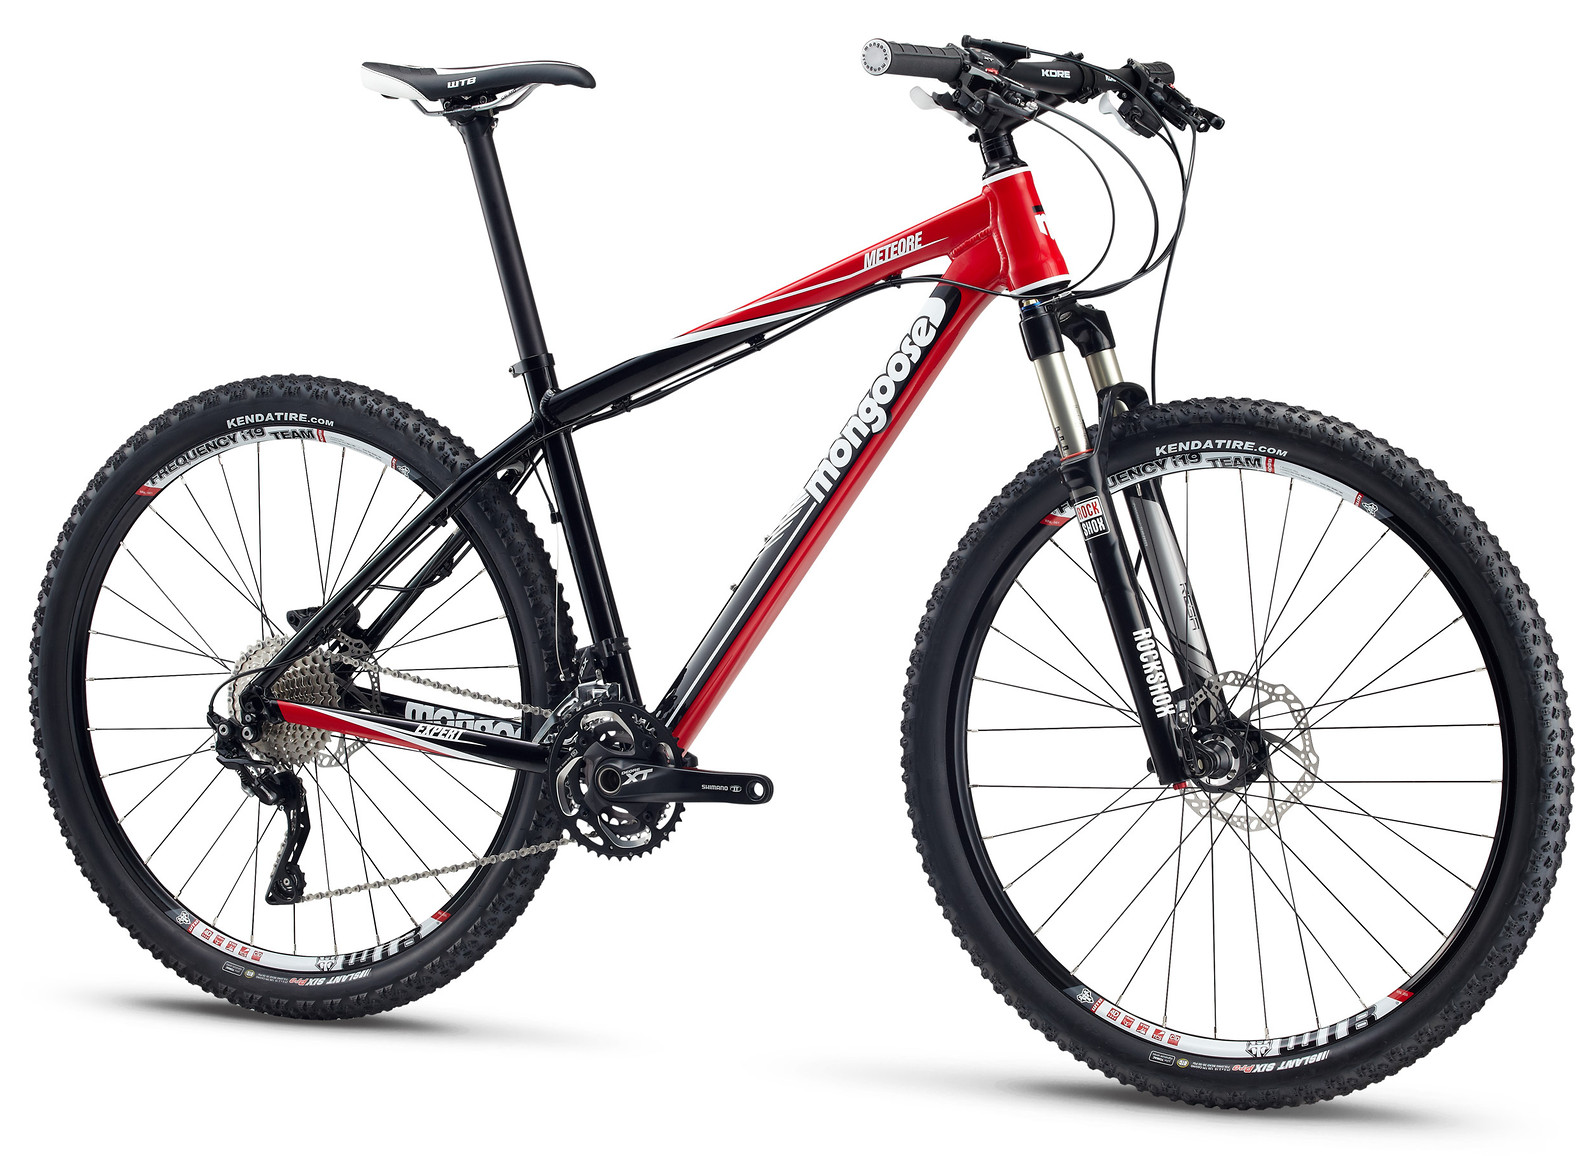 2014 Mongoose Meteore Expert Bike